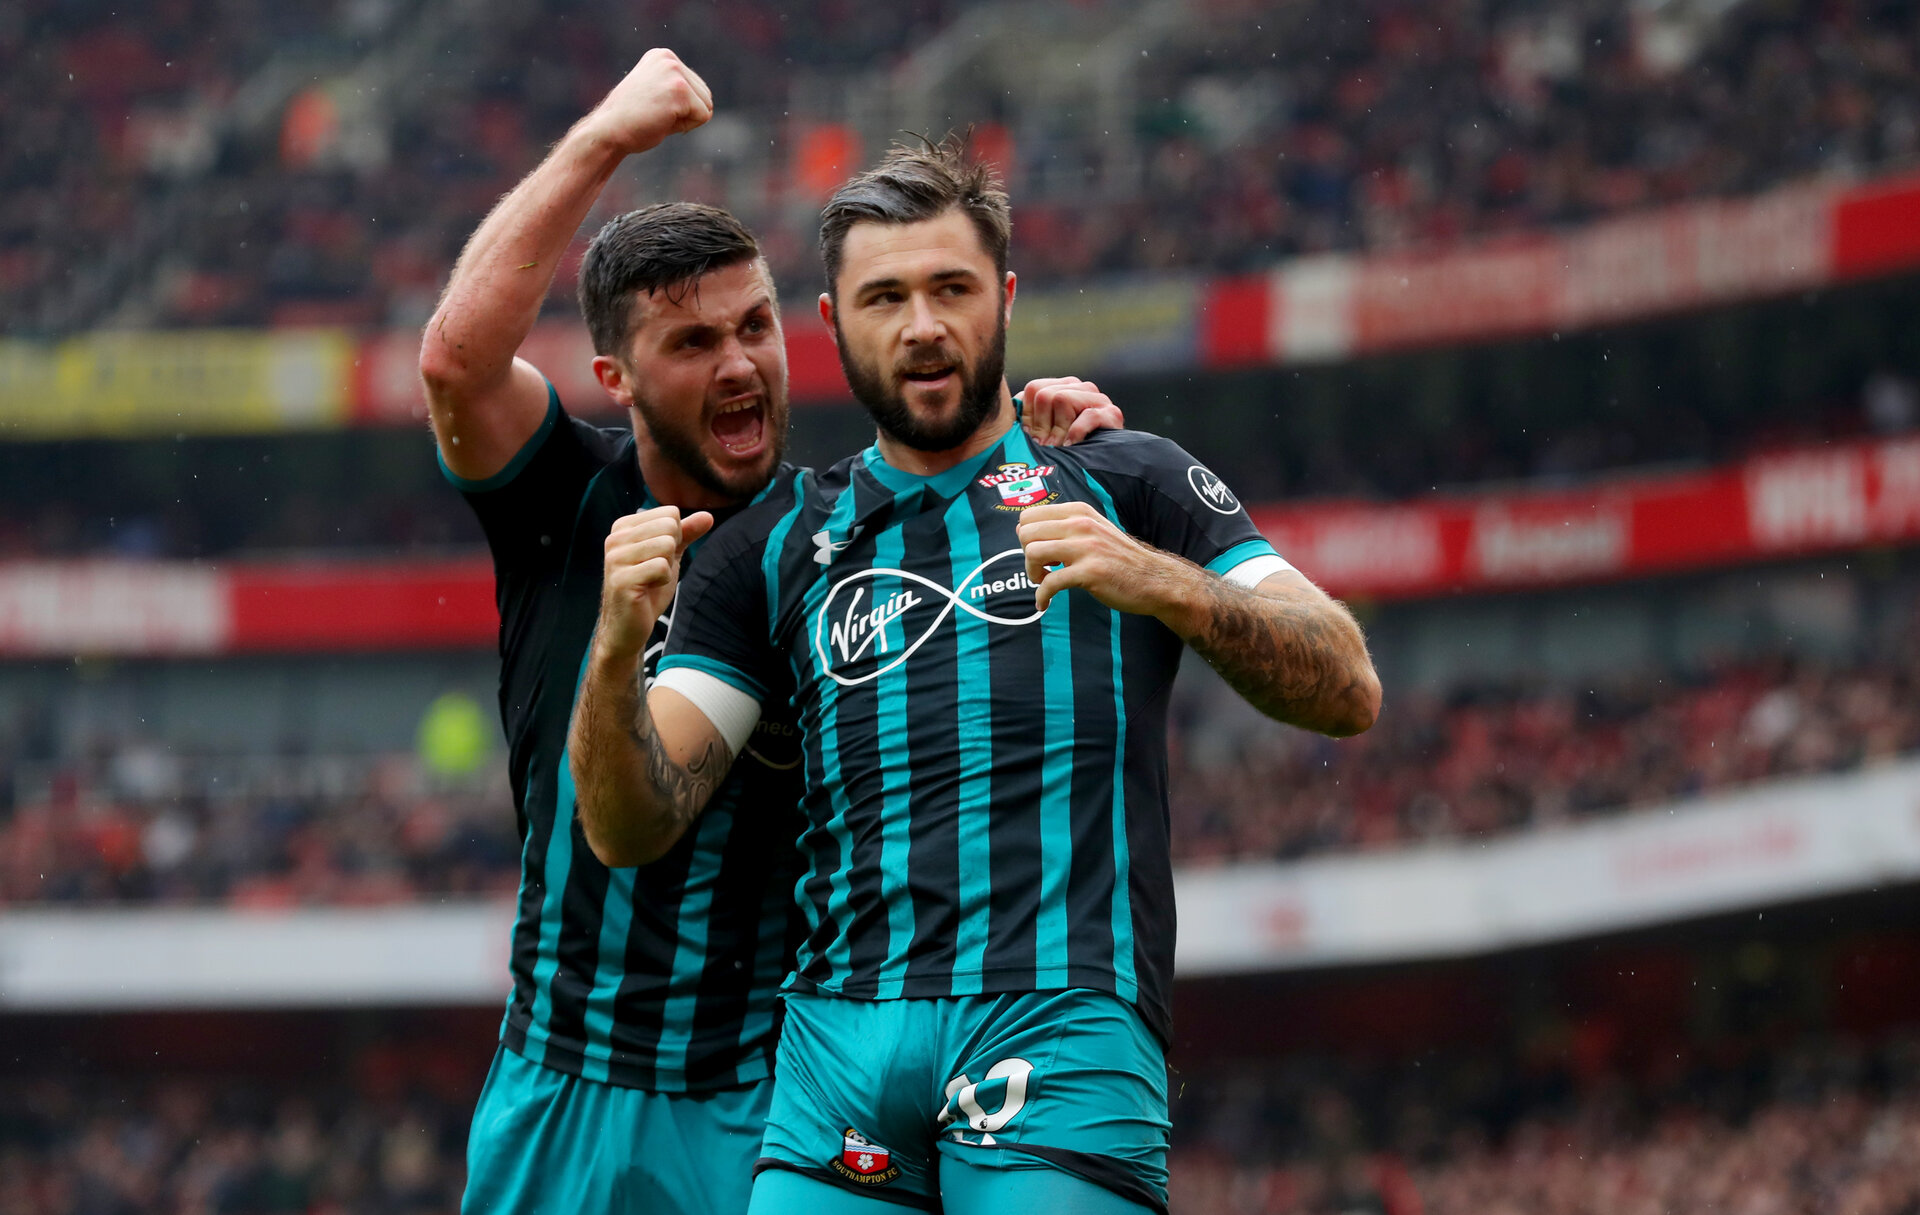 LONDON, ENGLAND - APRIL 08: Shane Long(L) and Charlie Austin of Southampton during the Premier League match between Arsenal and Southampton at Emirates Stadium on April 8, 2018 in London, England. (Photo by Matt Watson/Southampton FC via Getty Images)